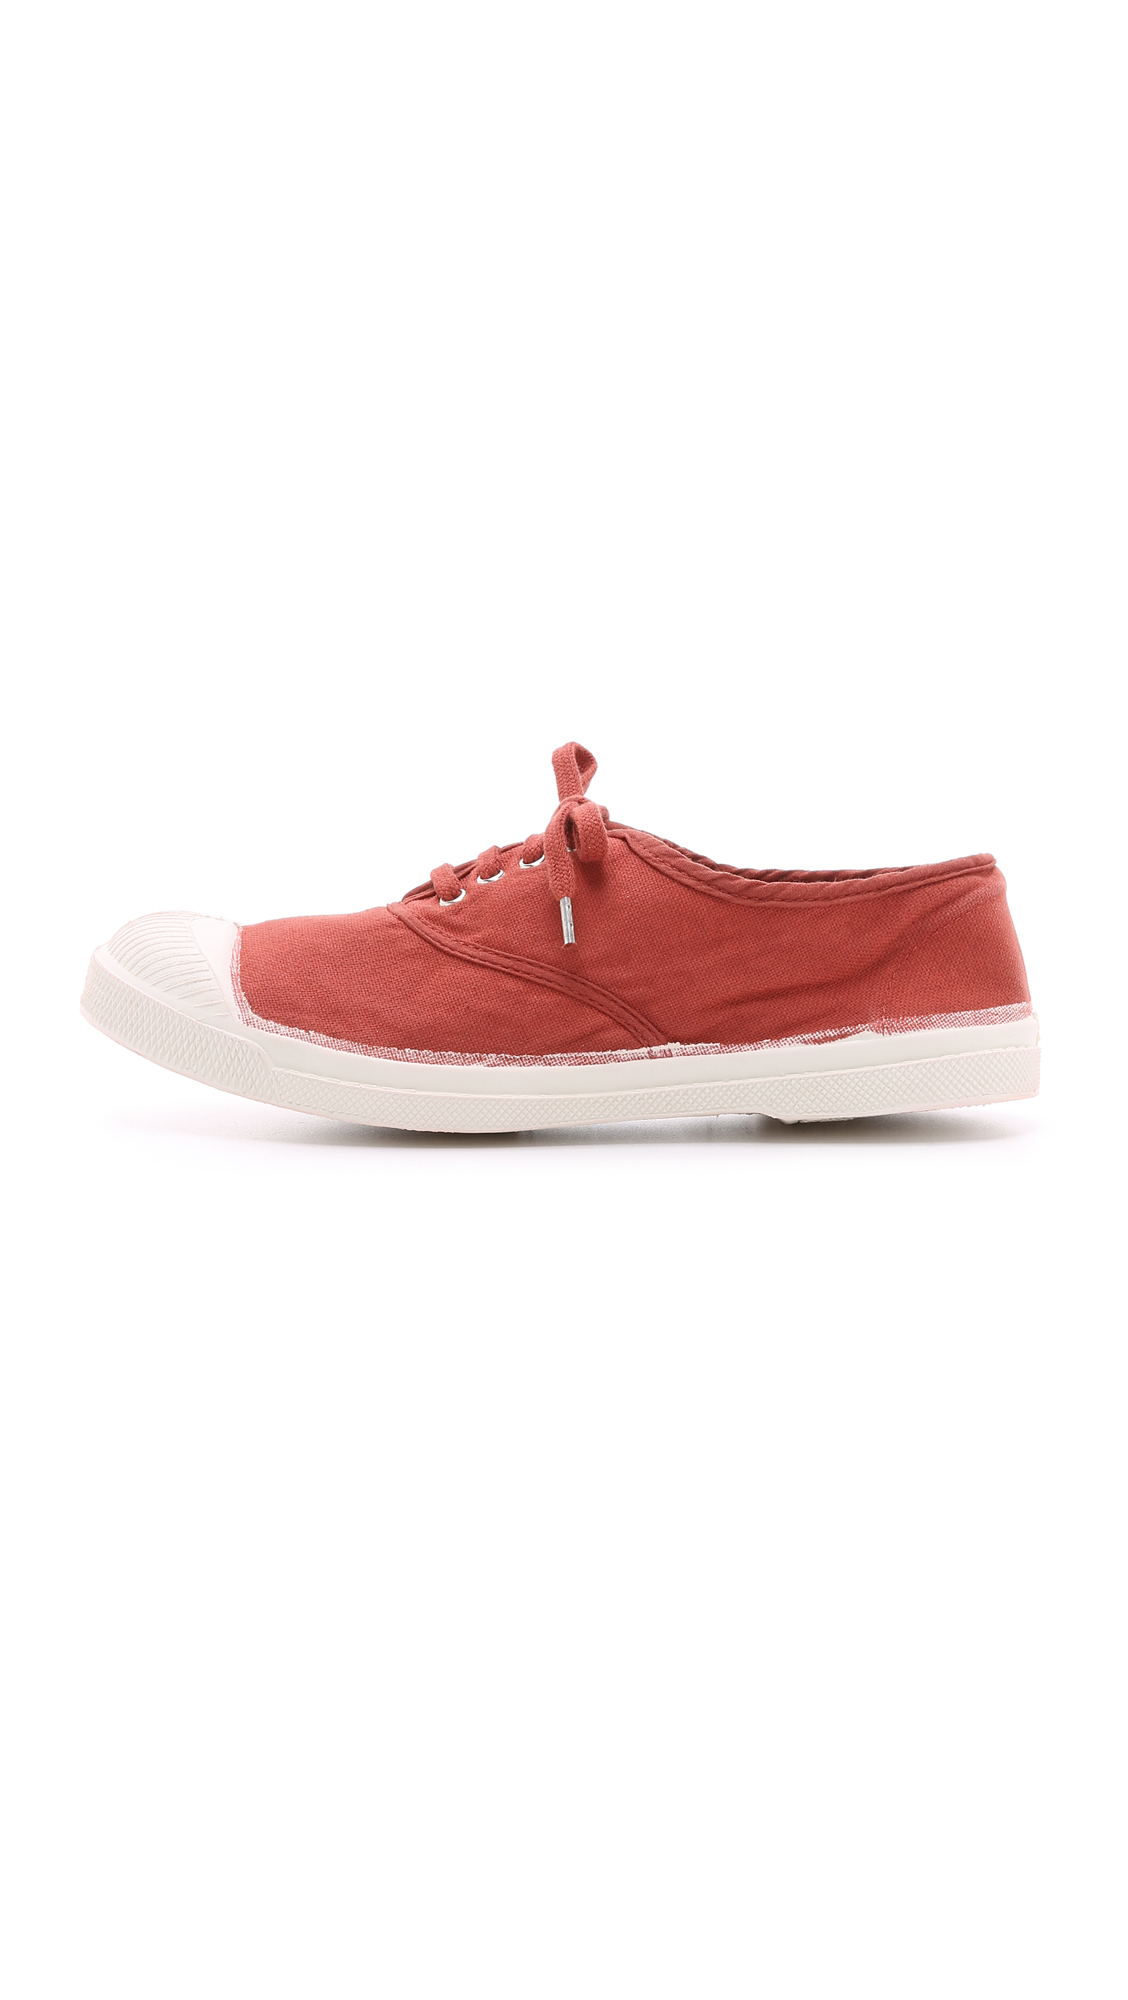 Bensimon Tennis Laced Sneakers in Red